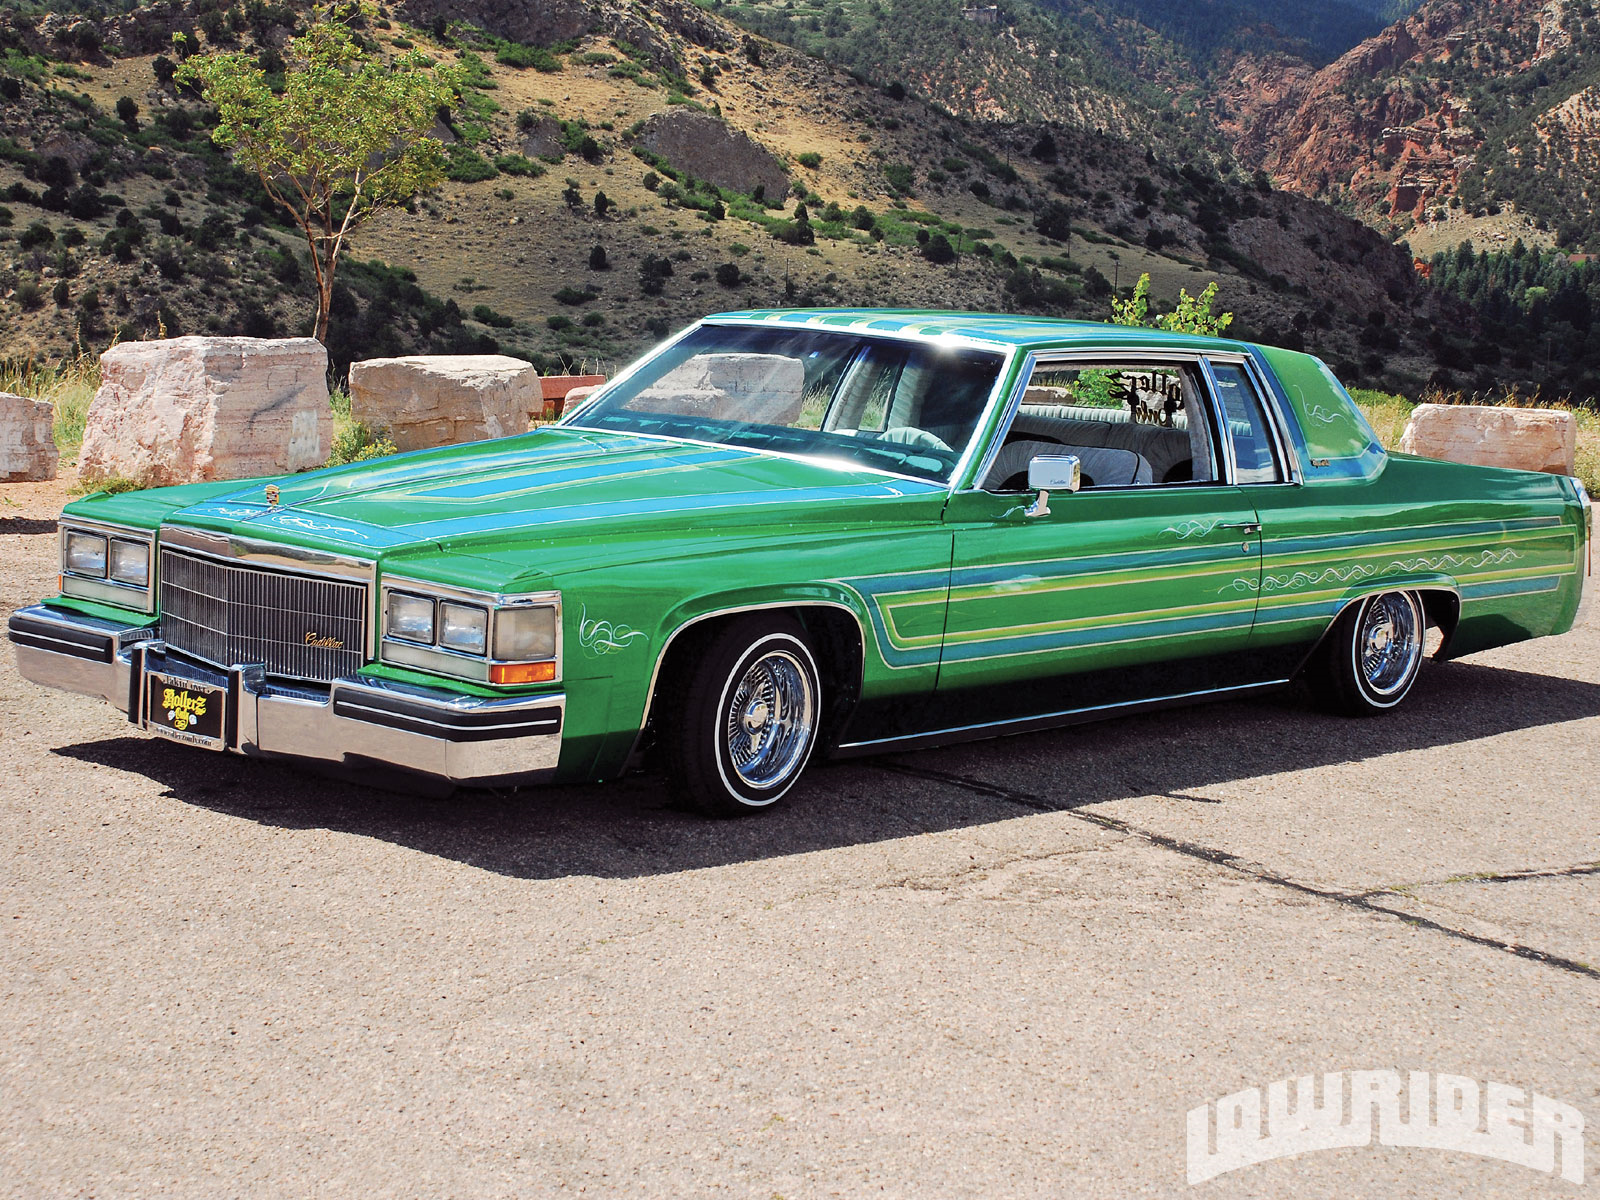 1984 Cadillac Coupe Deville Lowrider